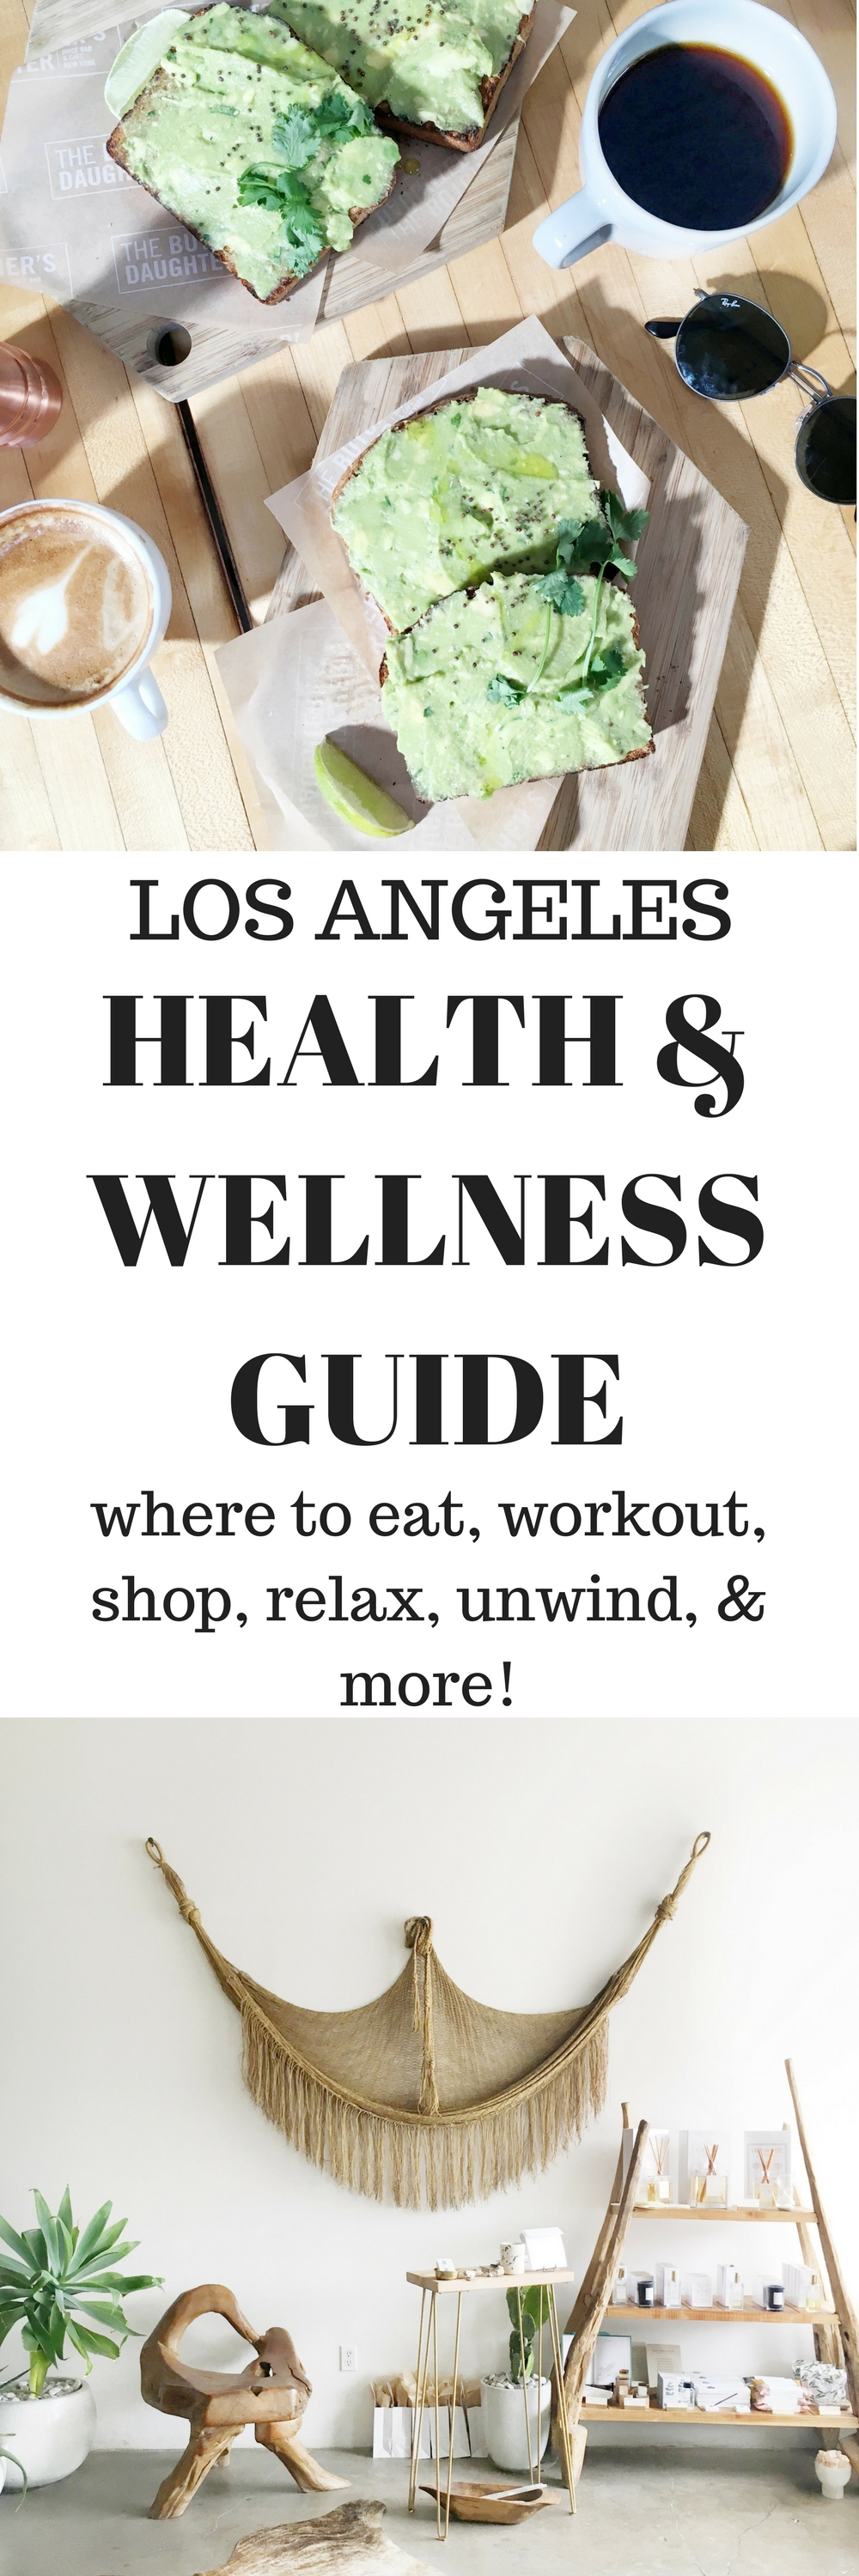 Los Angeles Health & Wellness Guide